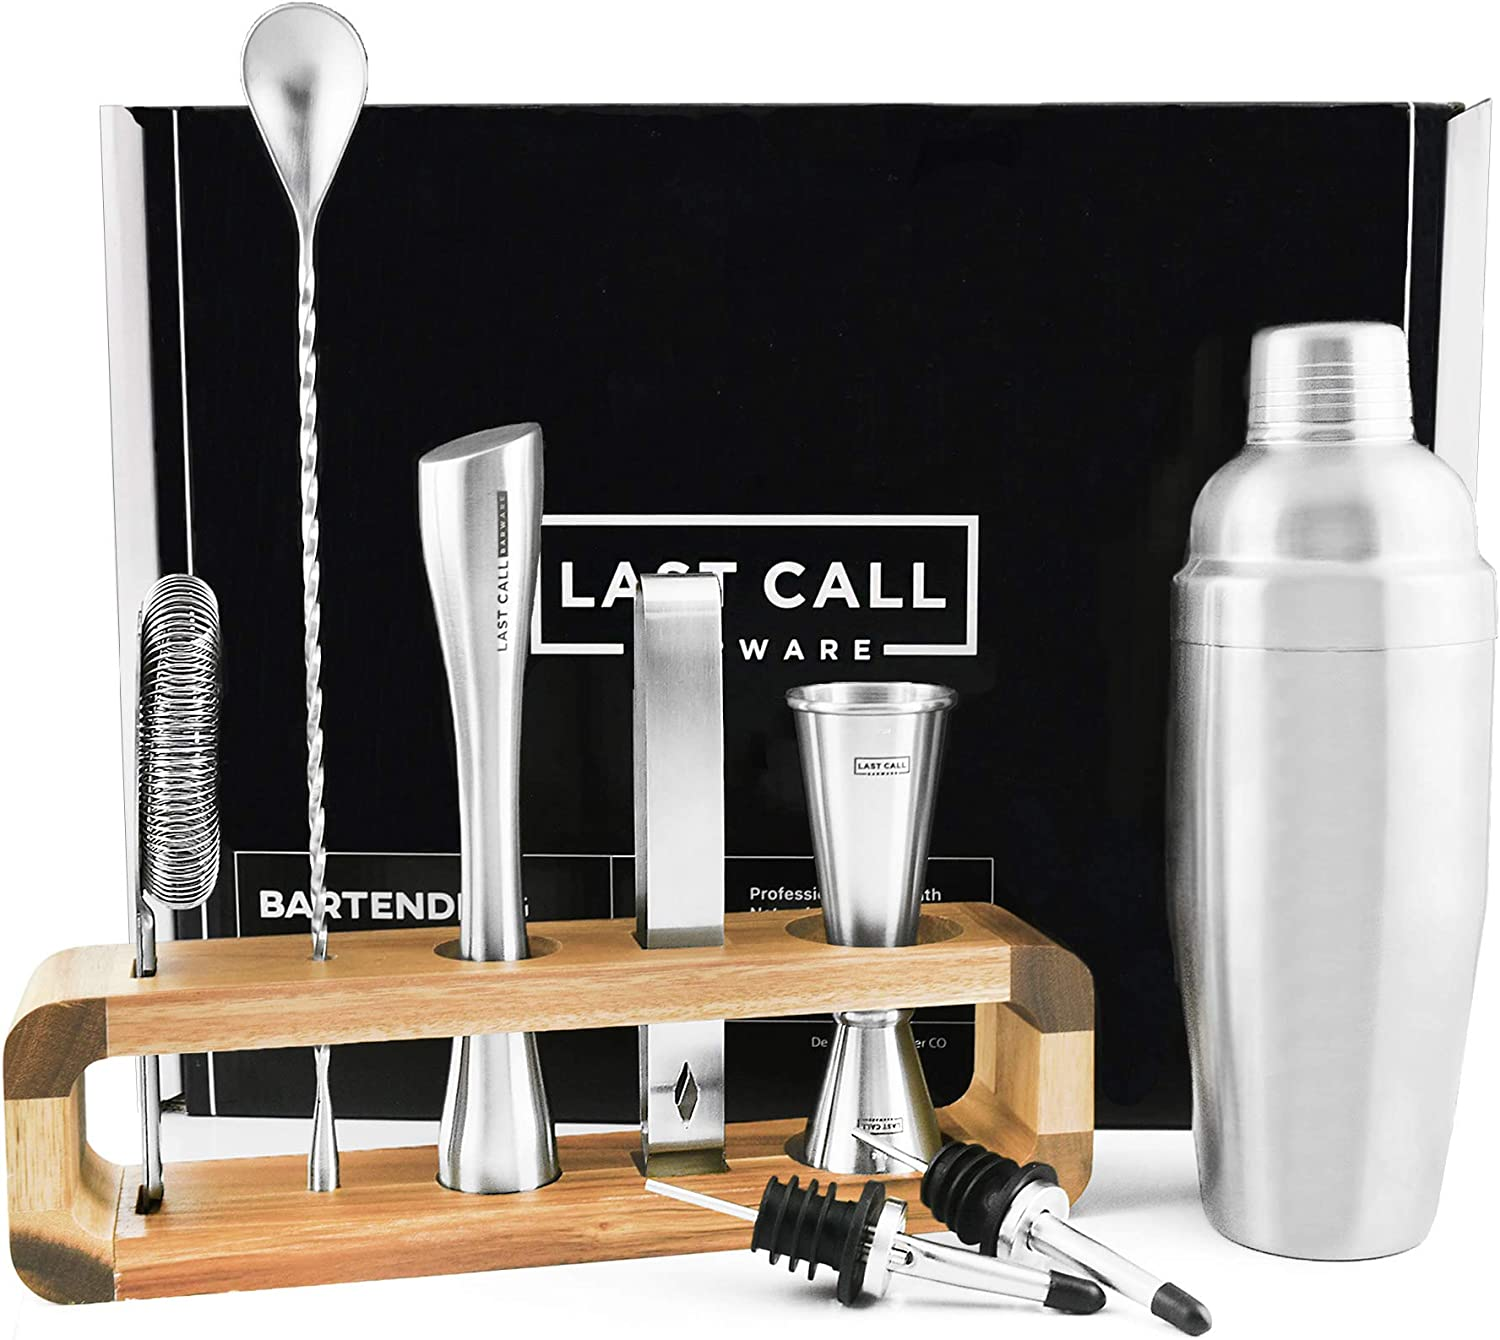 LAST CALL Barware Modern 9 piece Bartender Kit   100% Real Acacia Wood Stand   Top Grade Professional & Home Bar Set w/Authentic Bar Tools   Designed in Denver CO   Premium Brushed Stainless Steel